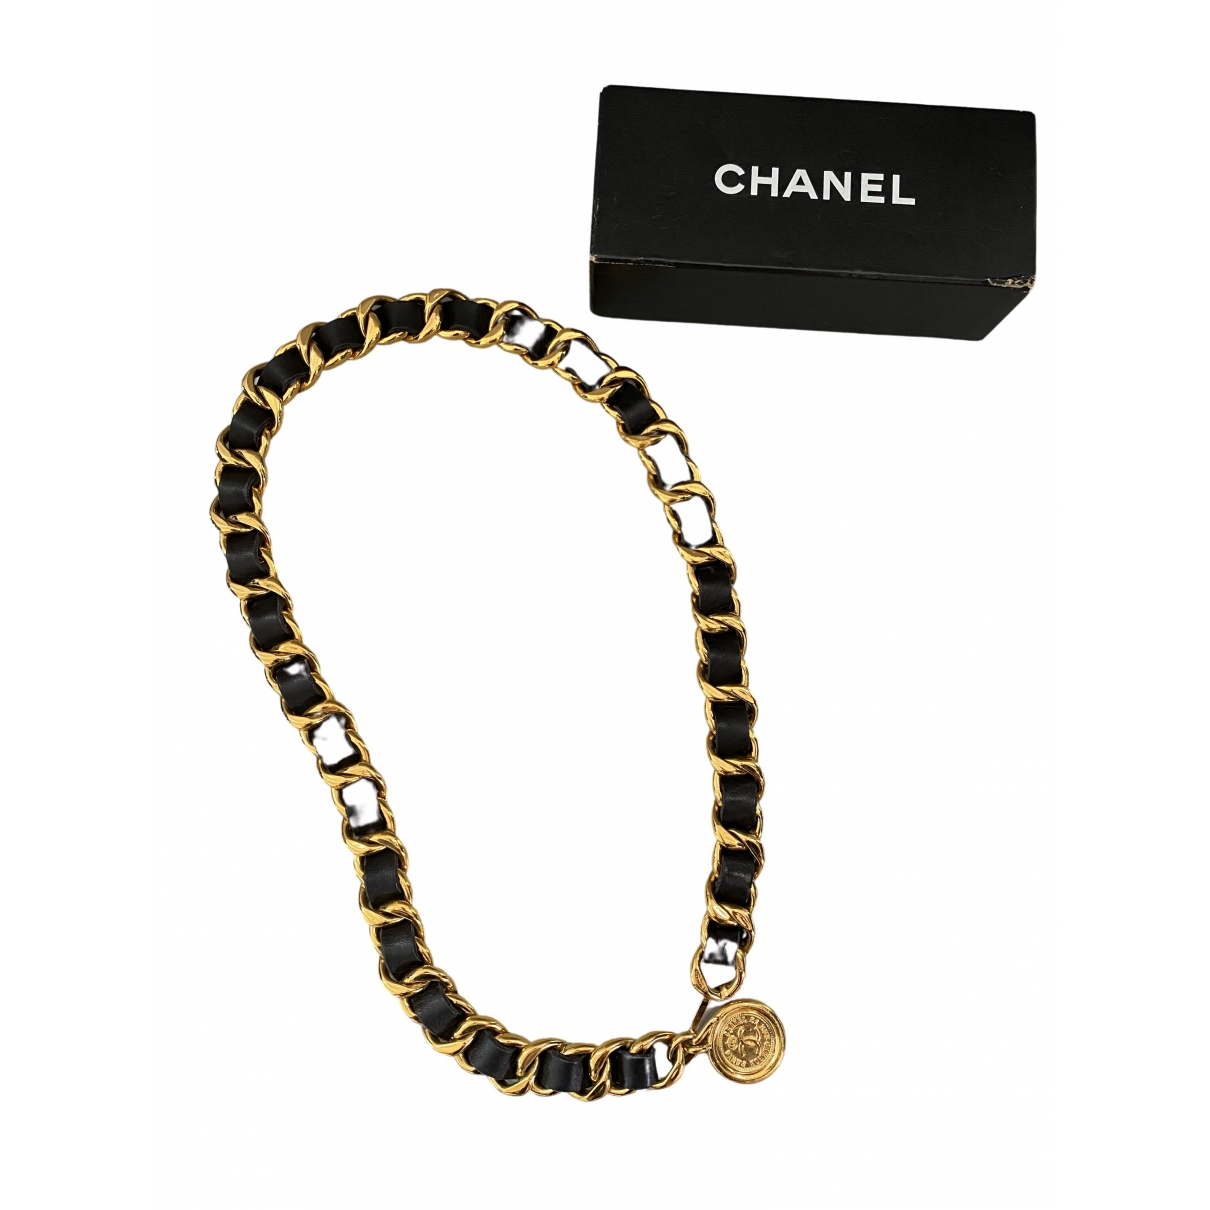 Chanel \N Black Leather belt for Women 37 Inches